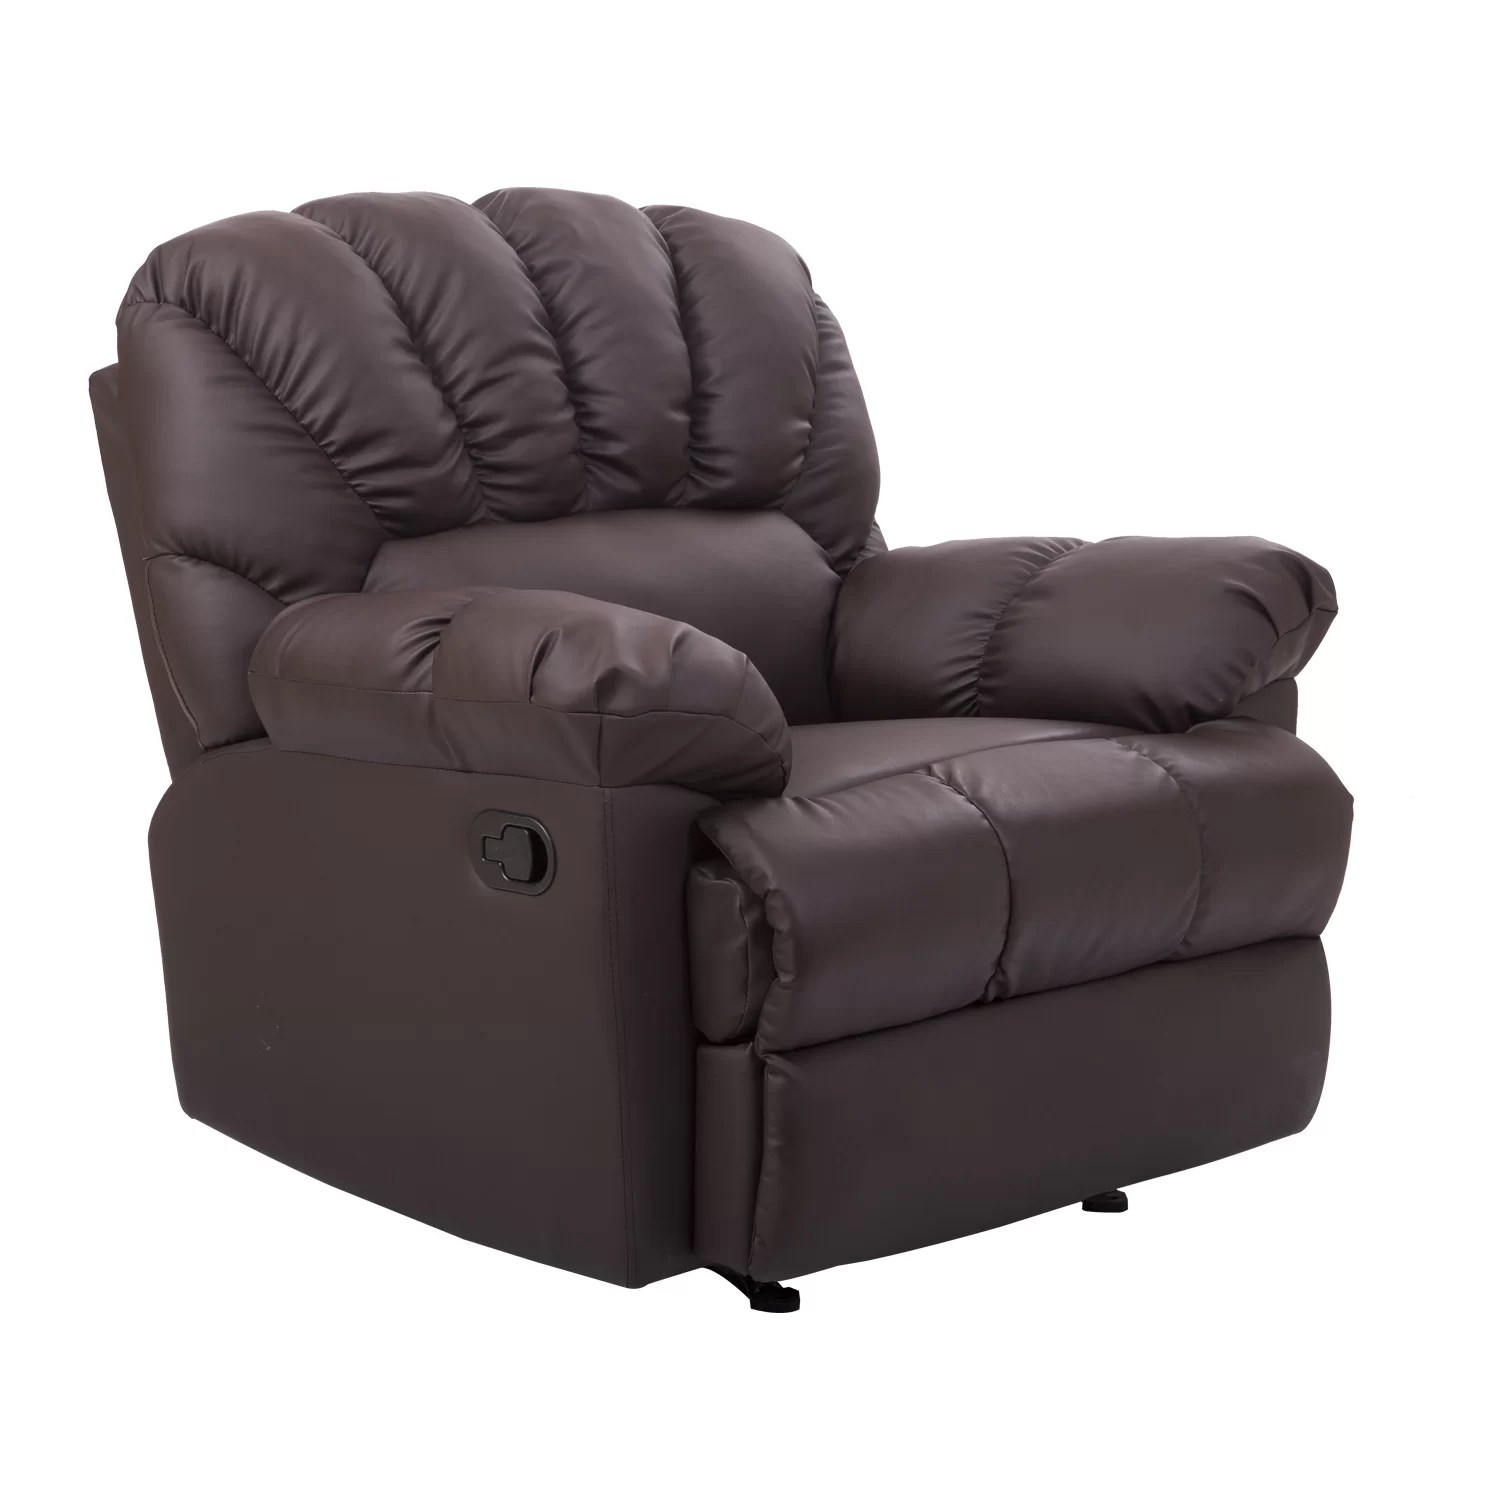 Recliner Rocking Chair Homcom Rocking Sofa Recliner And Reviews Wayfair